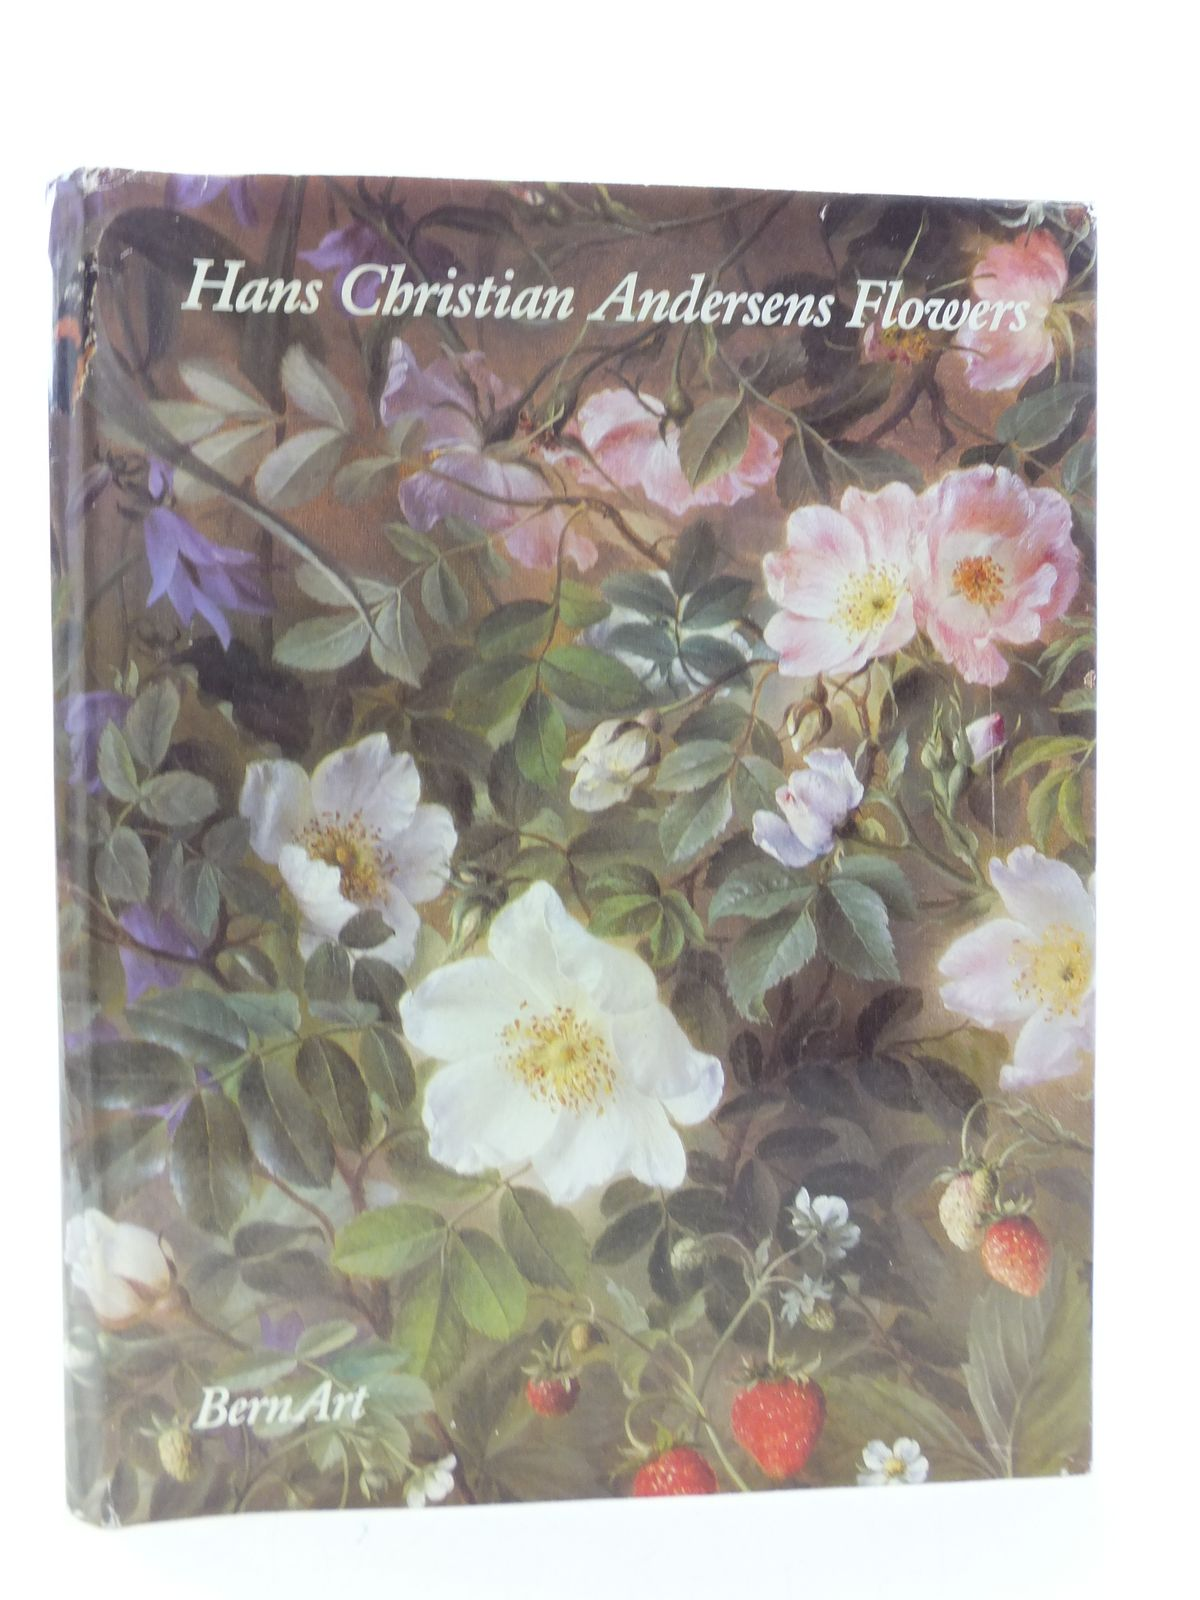 Photo of A POSY OF FLOWERS PAINTED BY SCANDINAVIAN ARTISTS IN THE TIME OF HANS CHRISTIAN ANDERSEN written by Nollen, Bernard published by Bern Art (STOCK CODE: 2113882)  for sale by Stella & Rose's Books